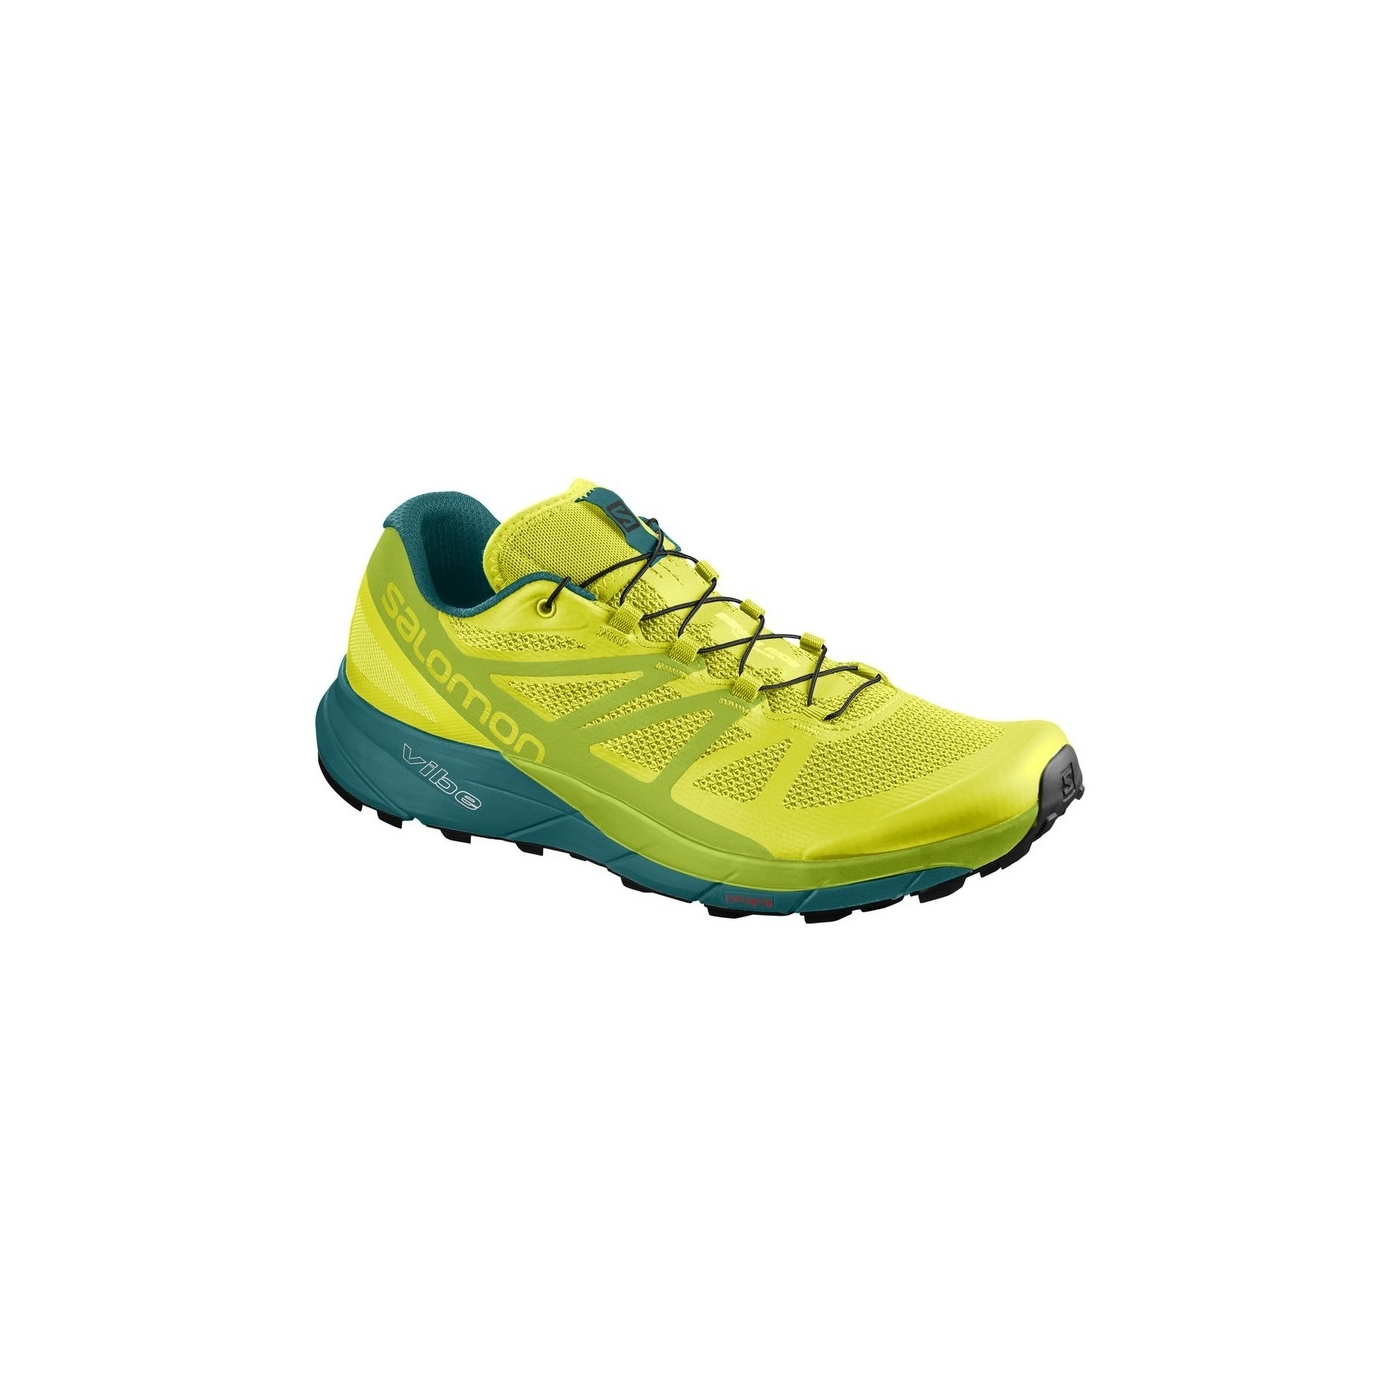 a58caf66e6f1 Chaussures Trail Salomon Sense Ride Sulfur Spring